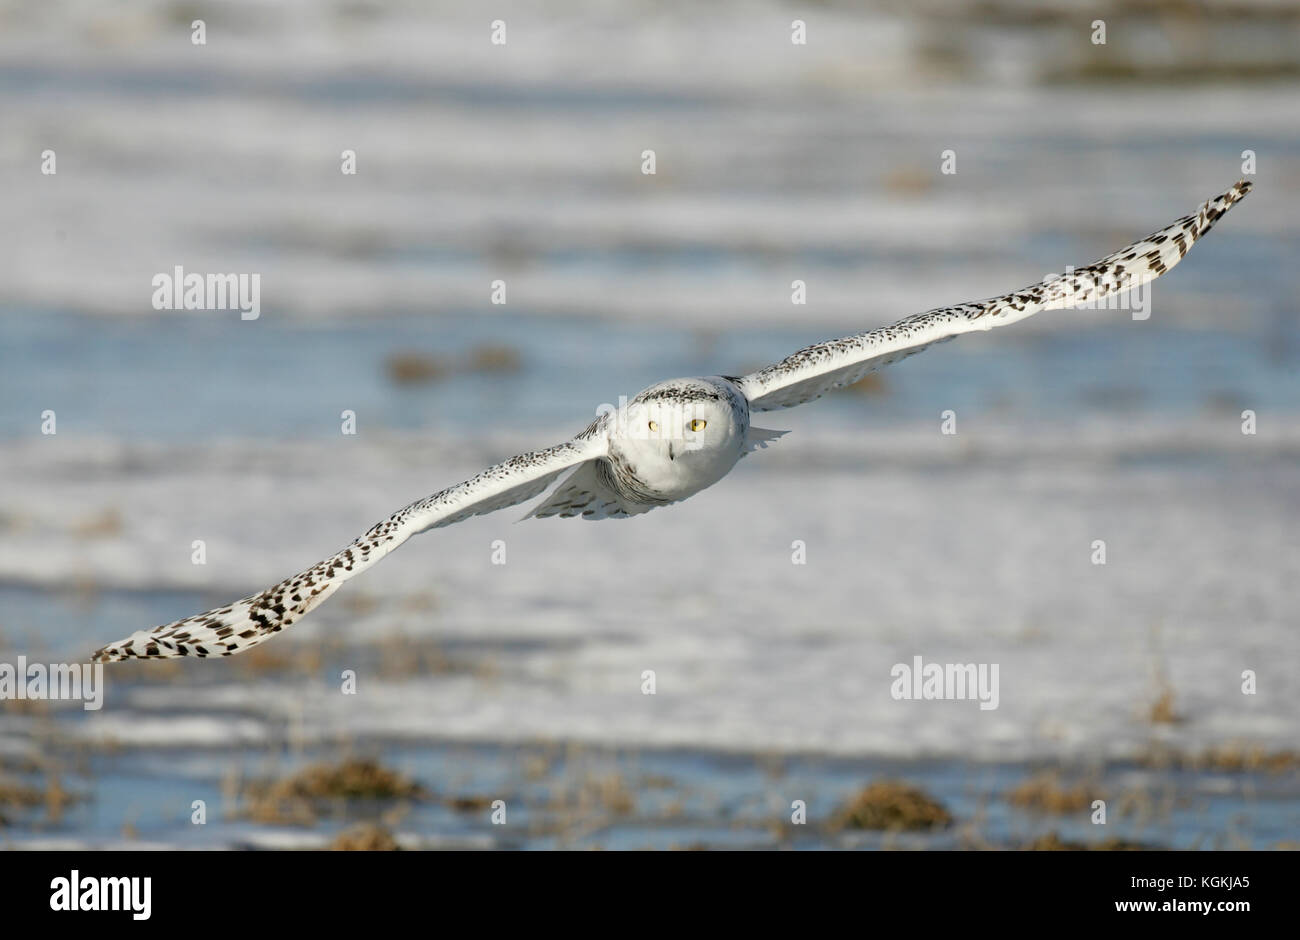 A closeup wildlife action portrayal of a snowy owl flying with wings outspread, hunting for prey against a backdrop - Stock Image